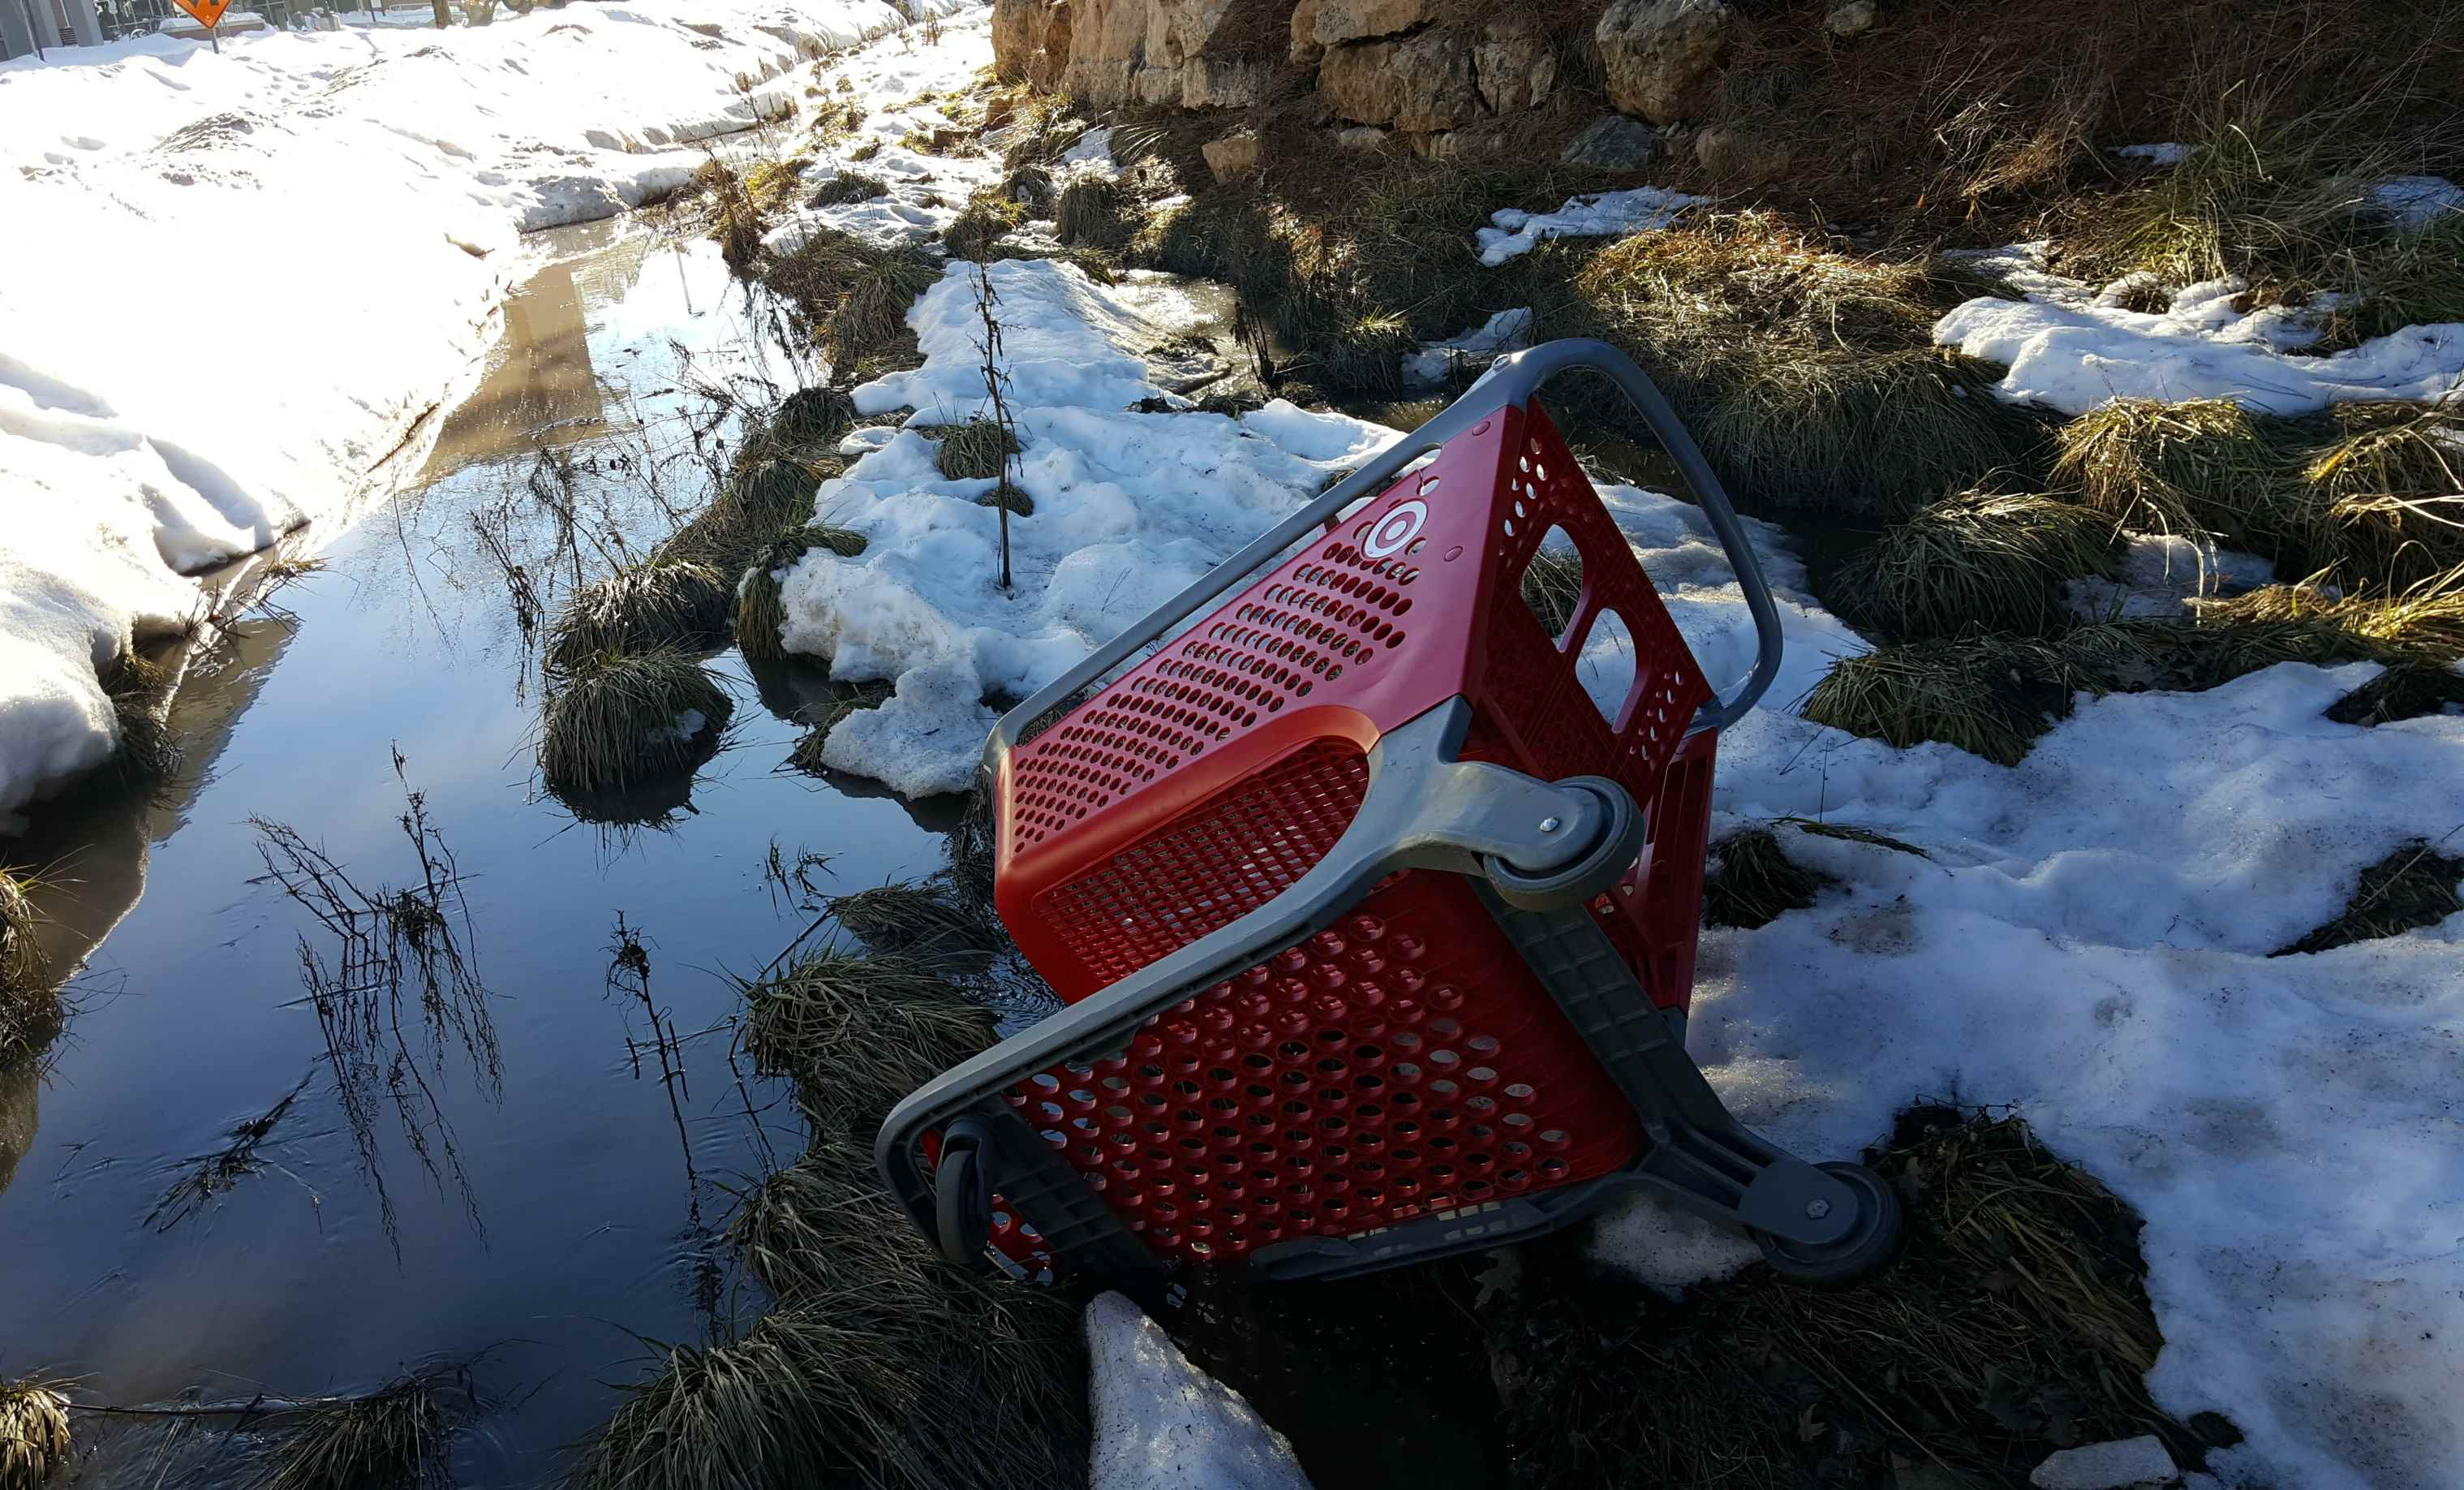 Image - Target Shopping Cart in Snowy Stream - Ped. Bridge near The Suites - Feb. 2017